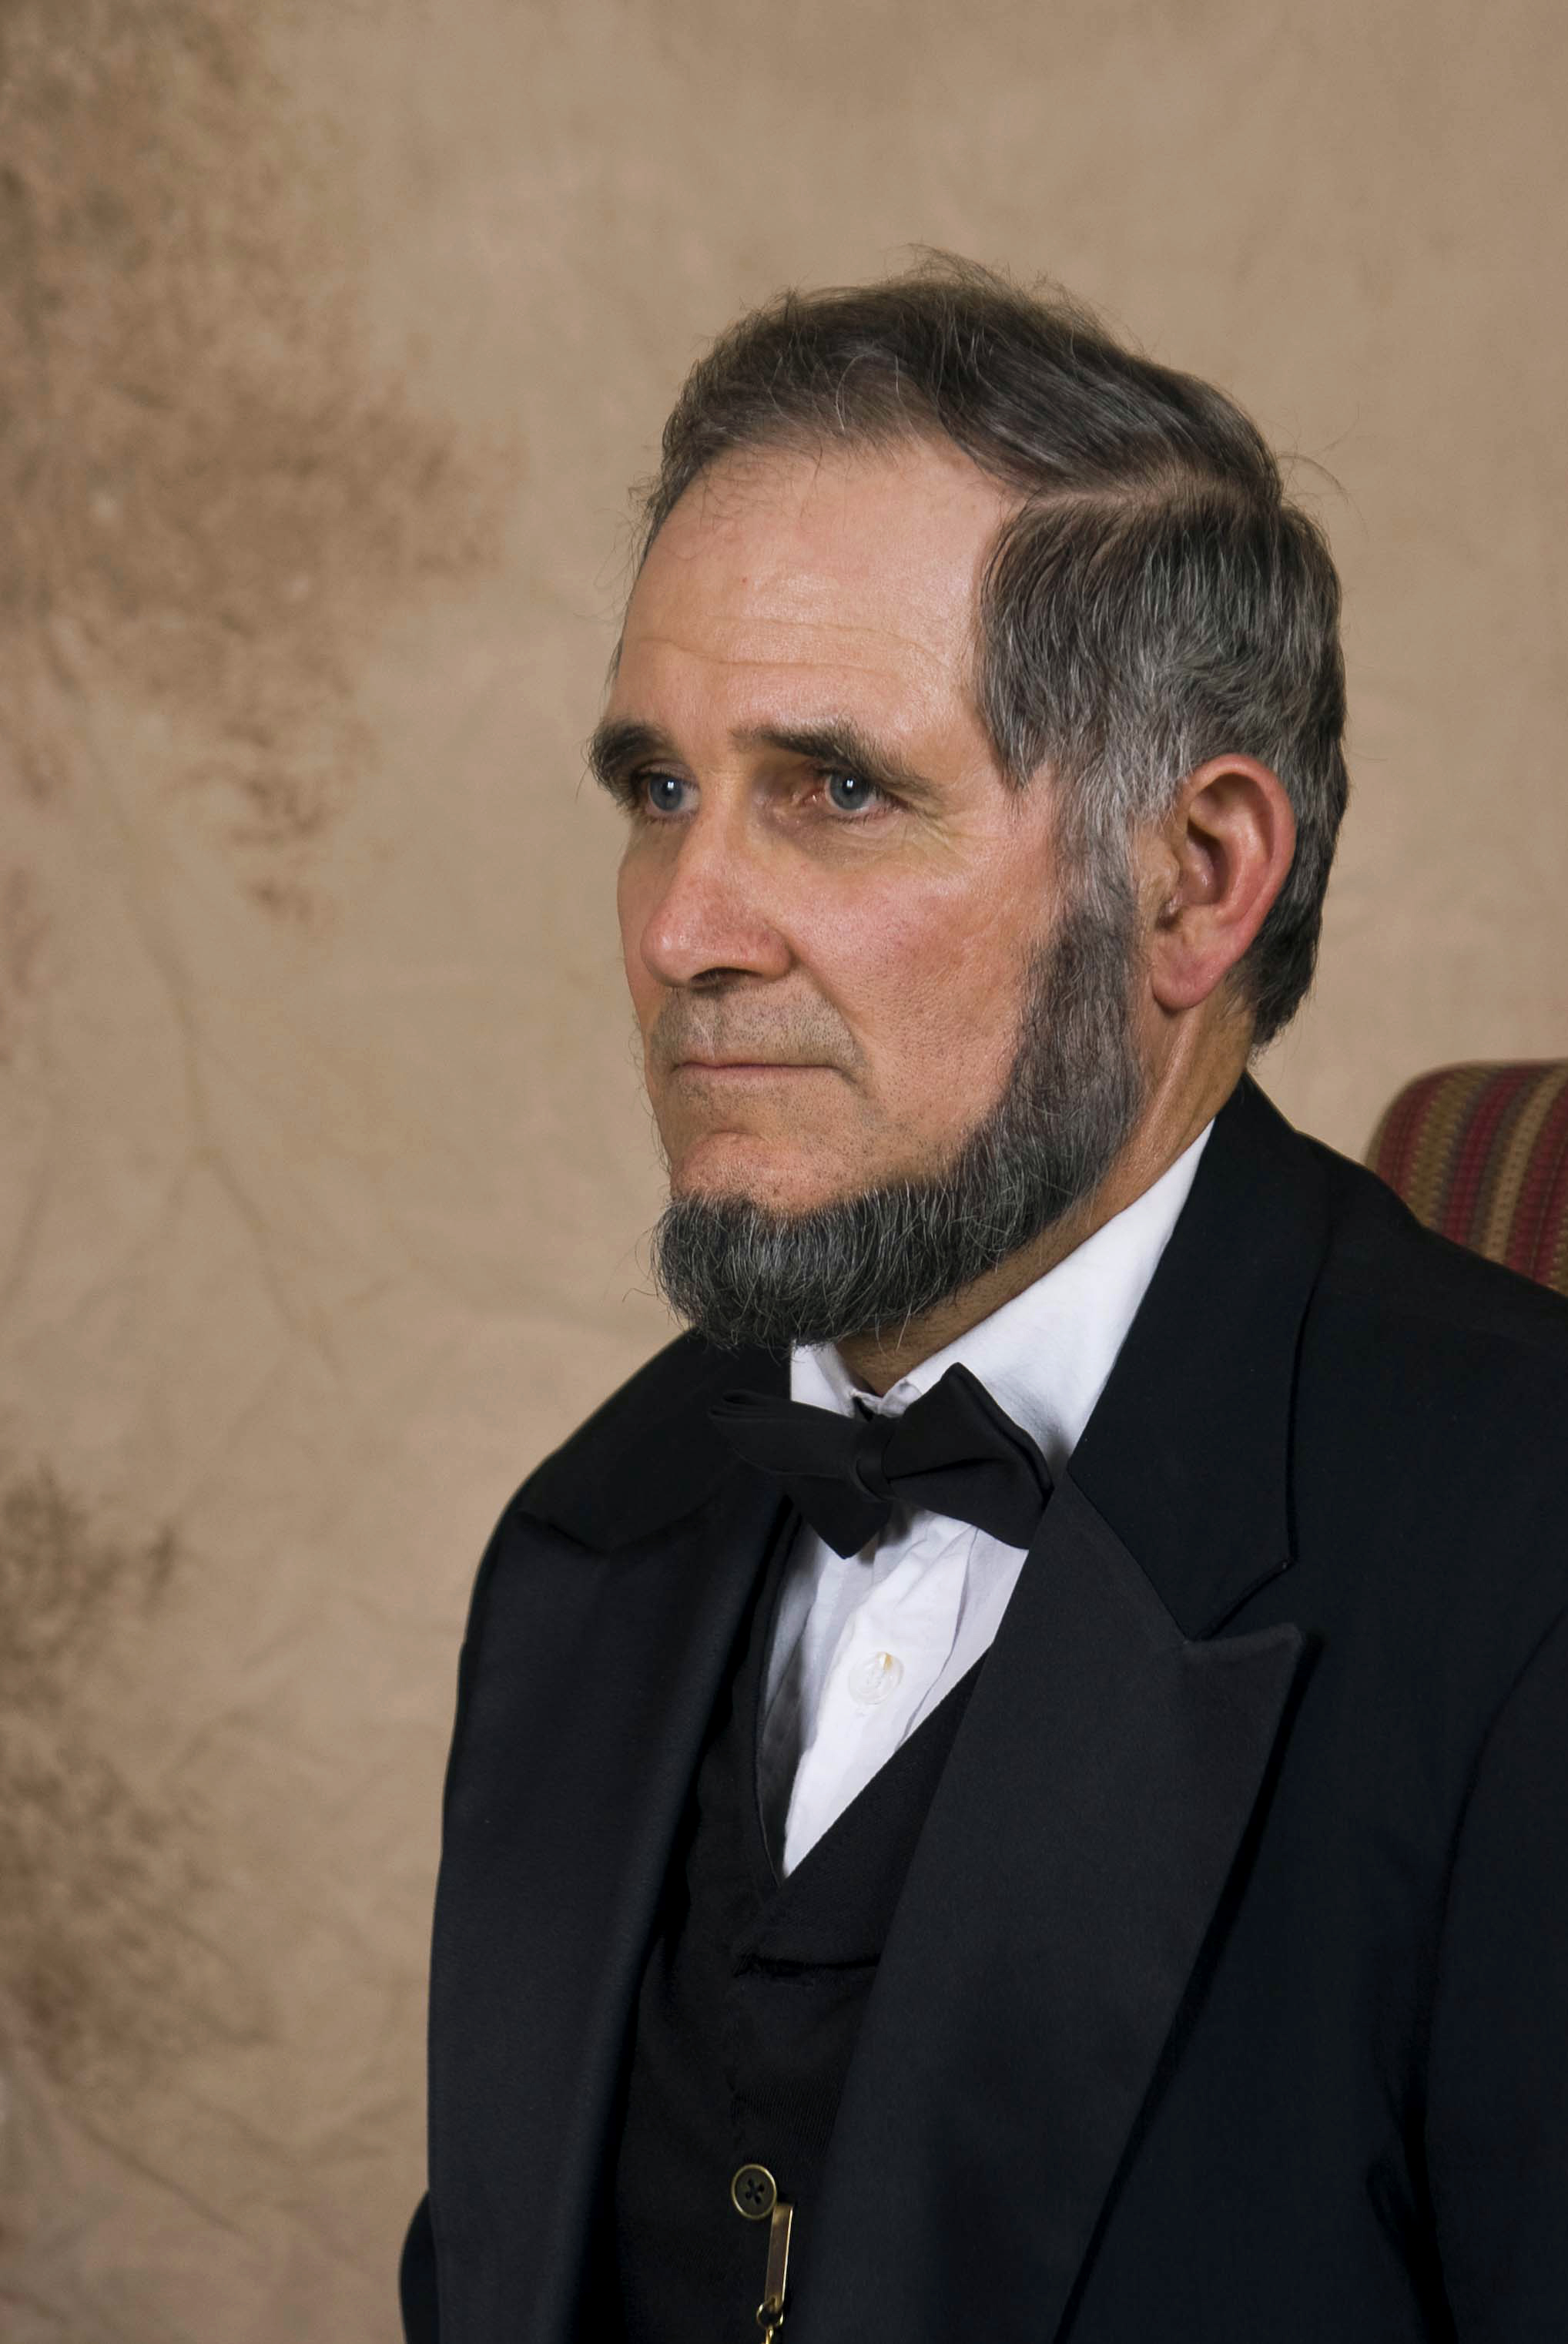 Abe Lincoln Presidential Protection